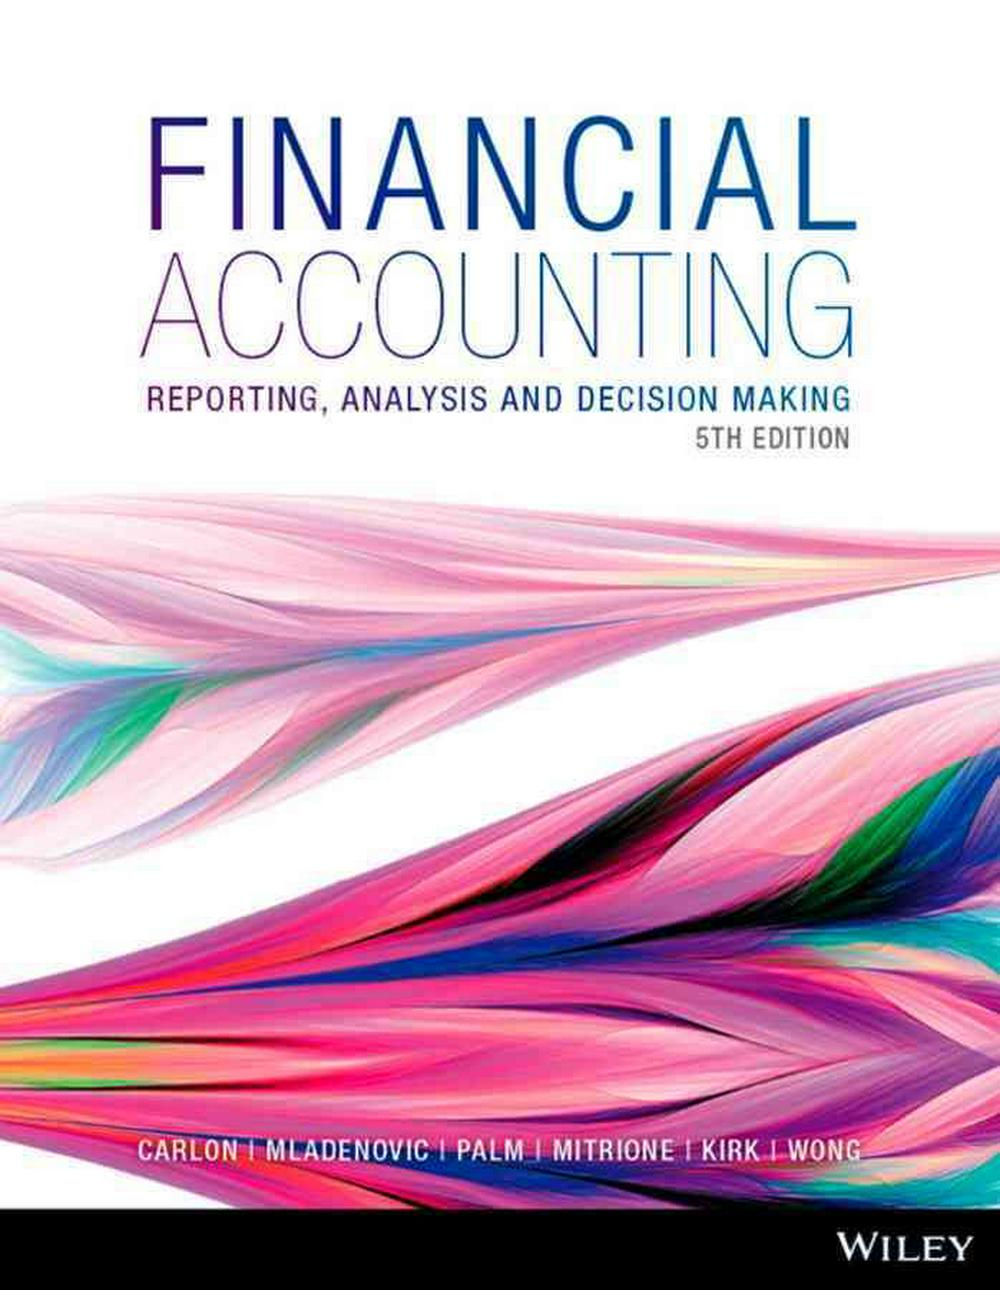 Financial AccountingReporting, Analysis and Decision Making 5e